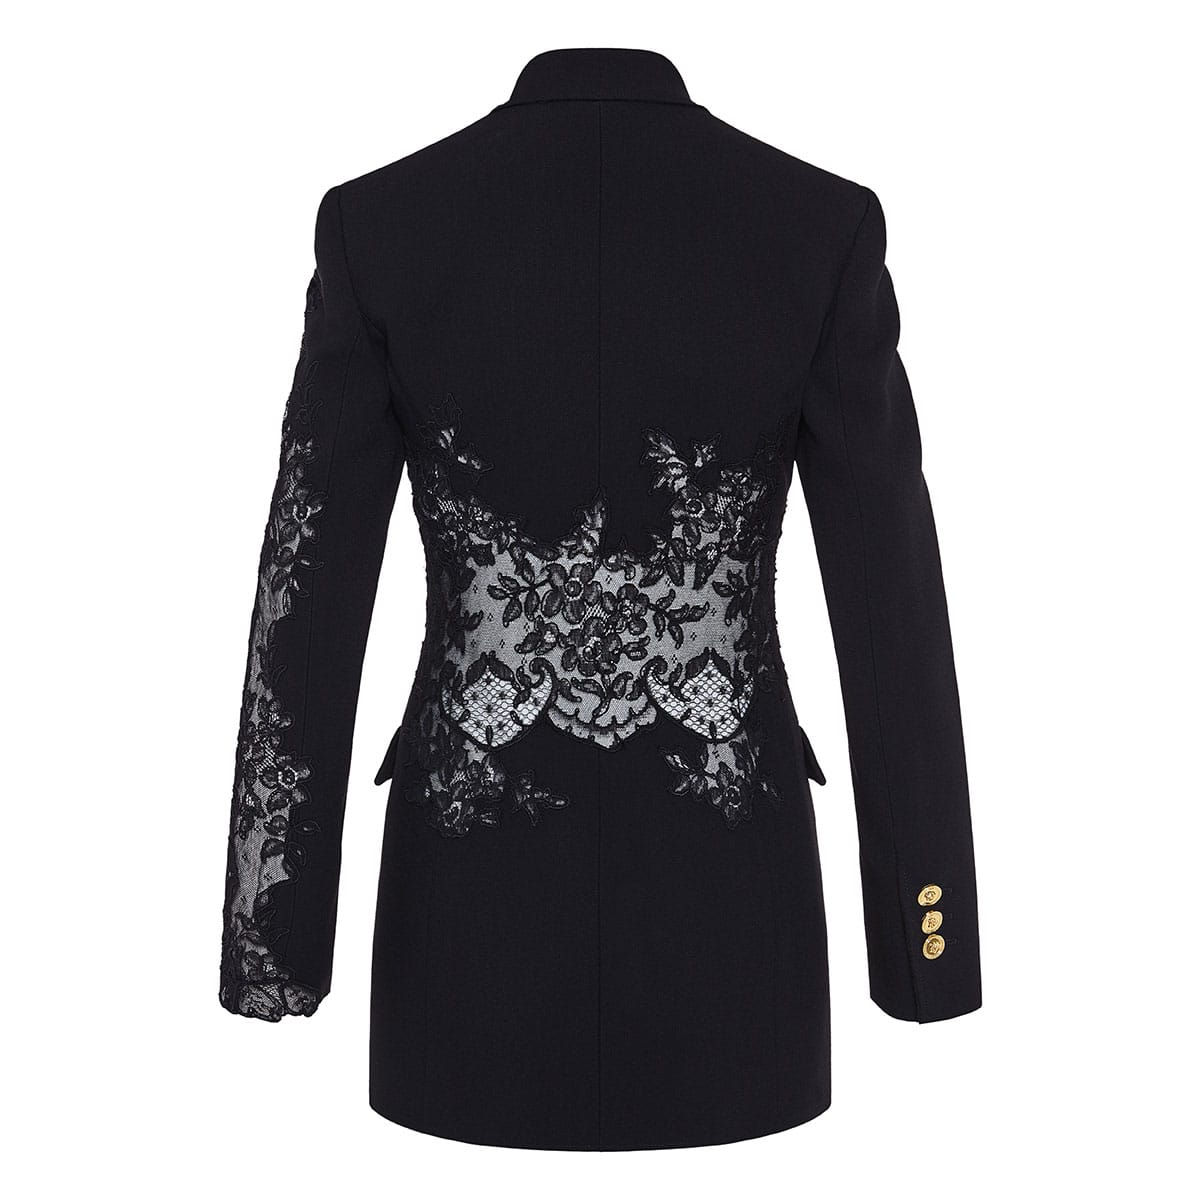 Lace-paneled blazer